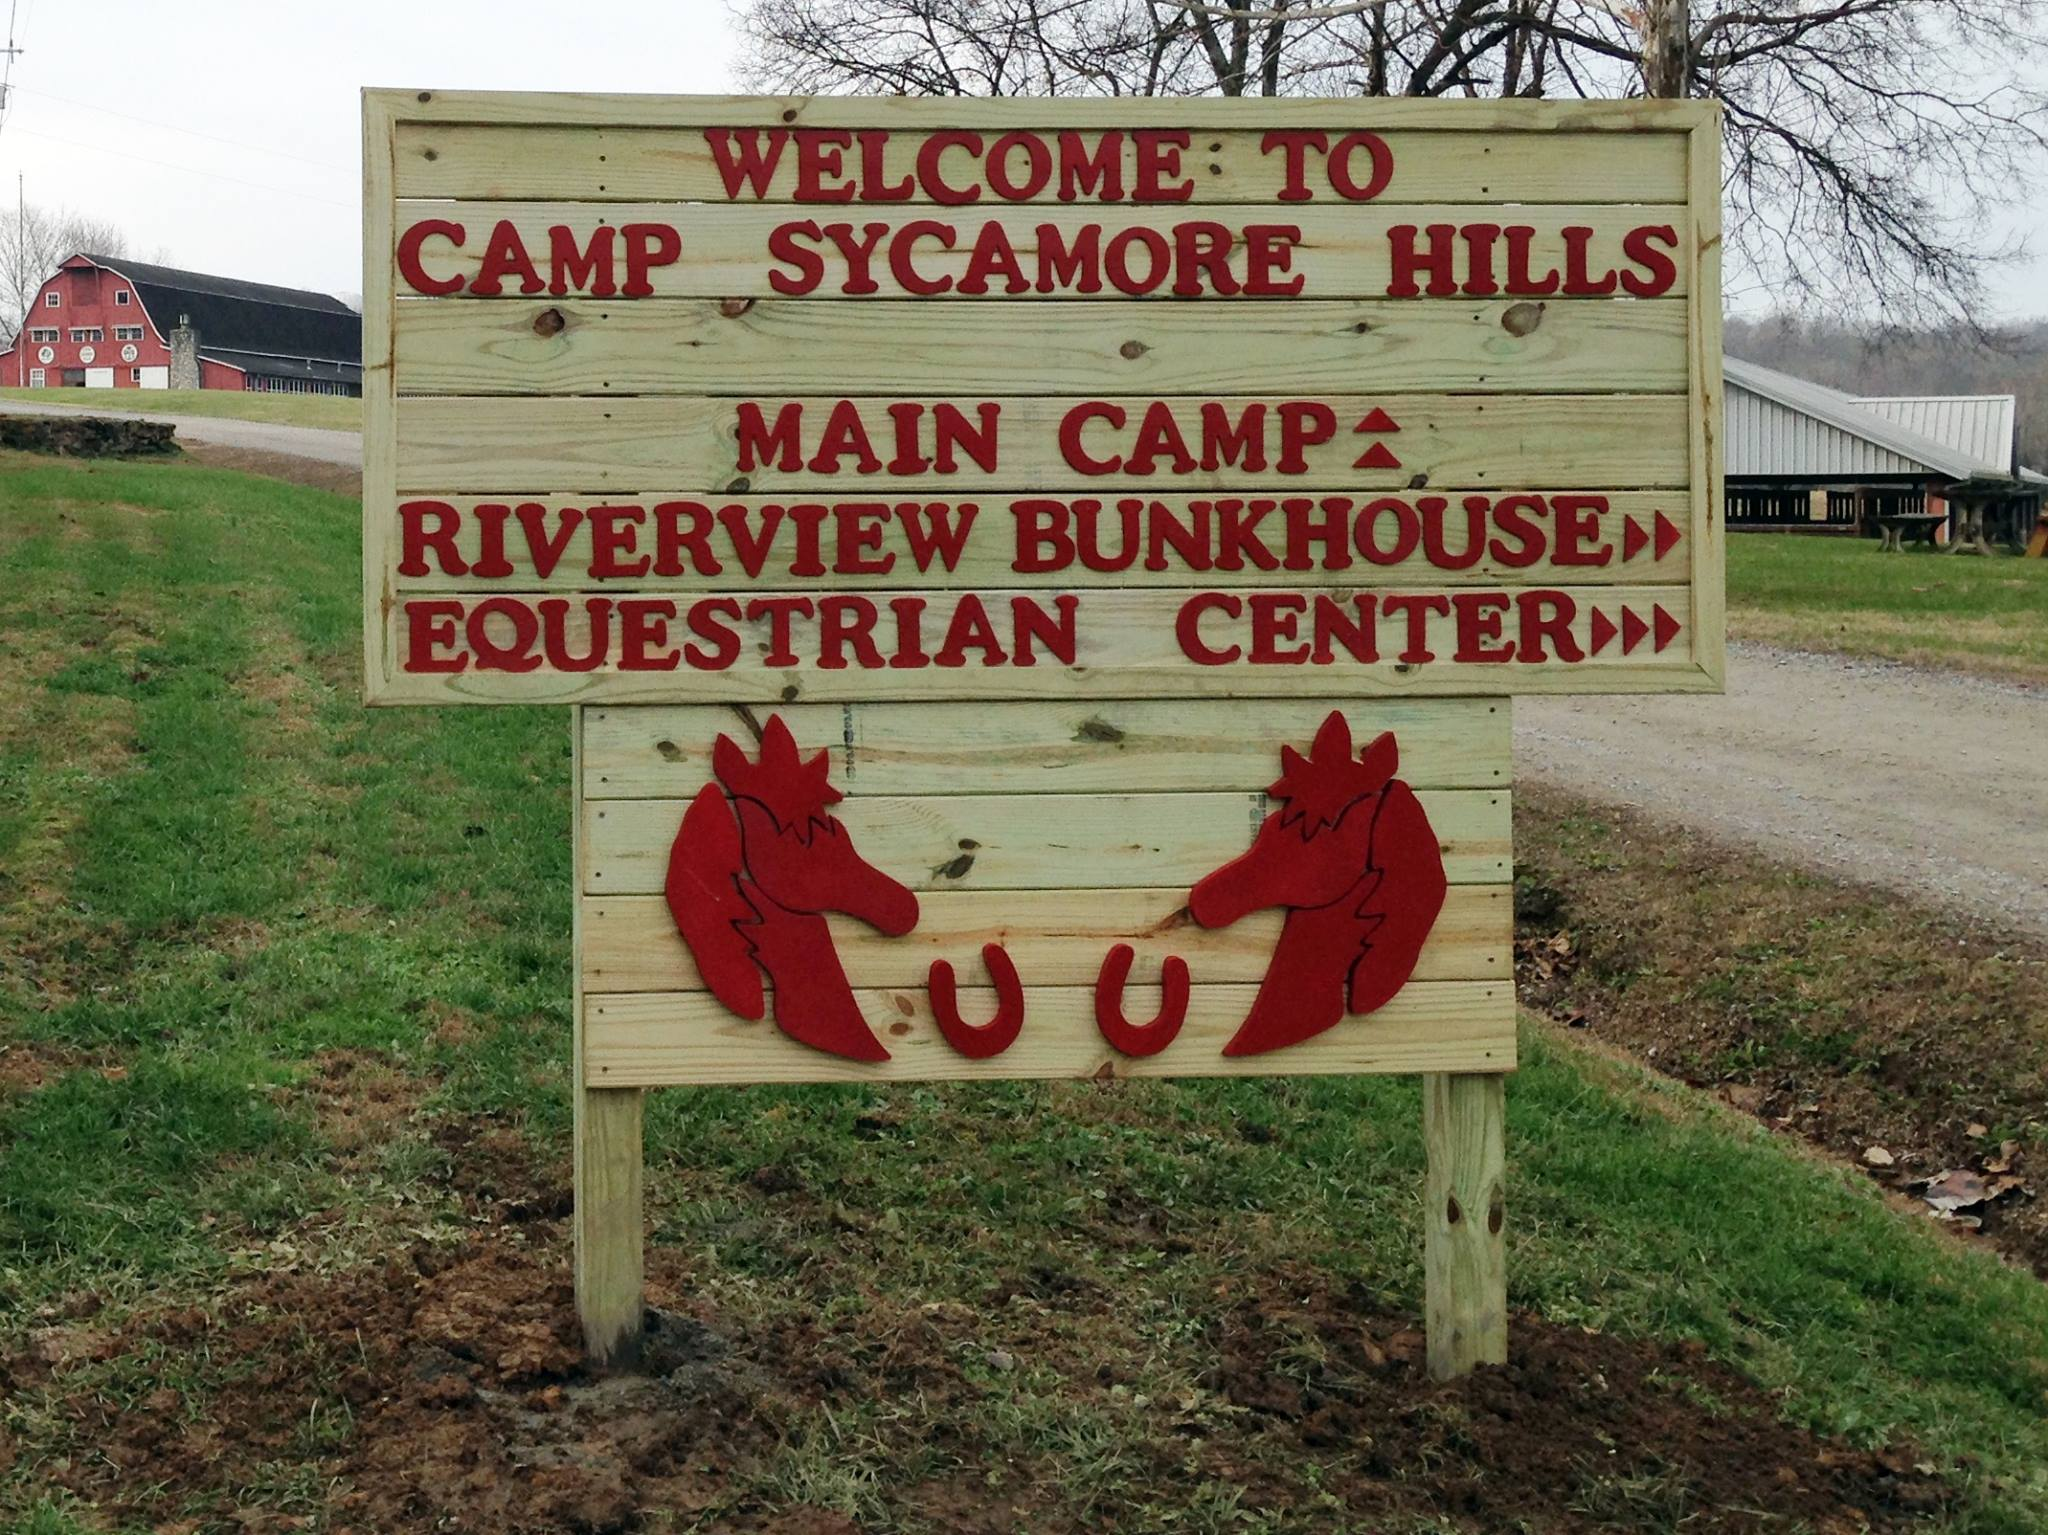 Camp Sycamore Hills